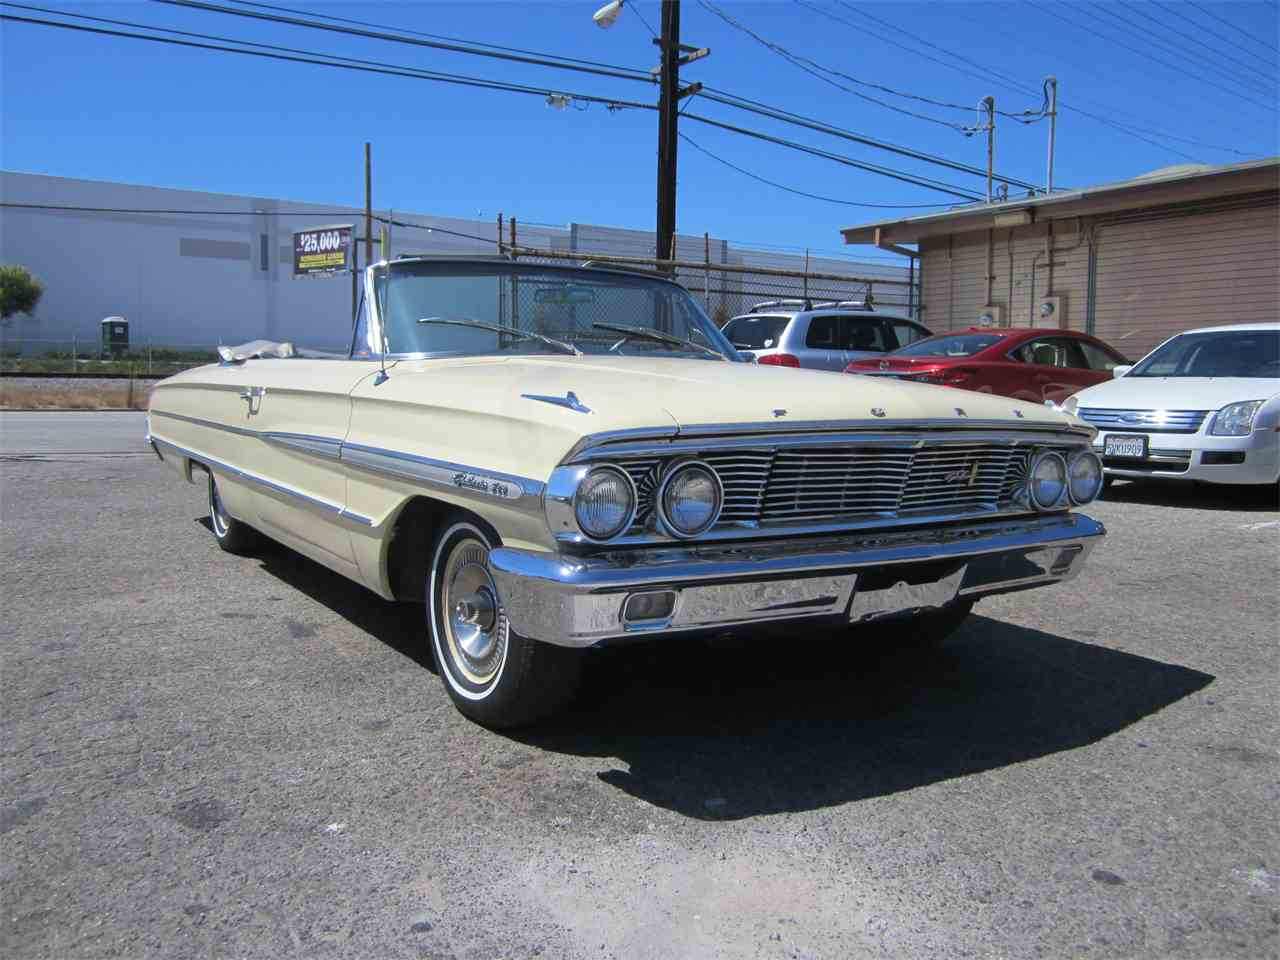 Large Picture of '64 Ford Galaxie 500 located in California - $17,000.00 Offered by a Private Seller - CHR6